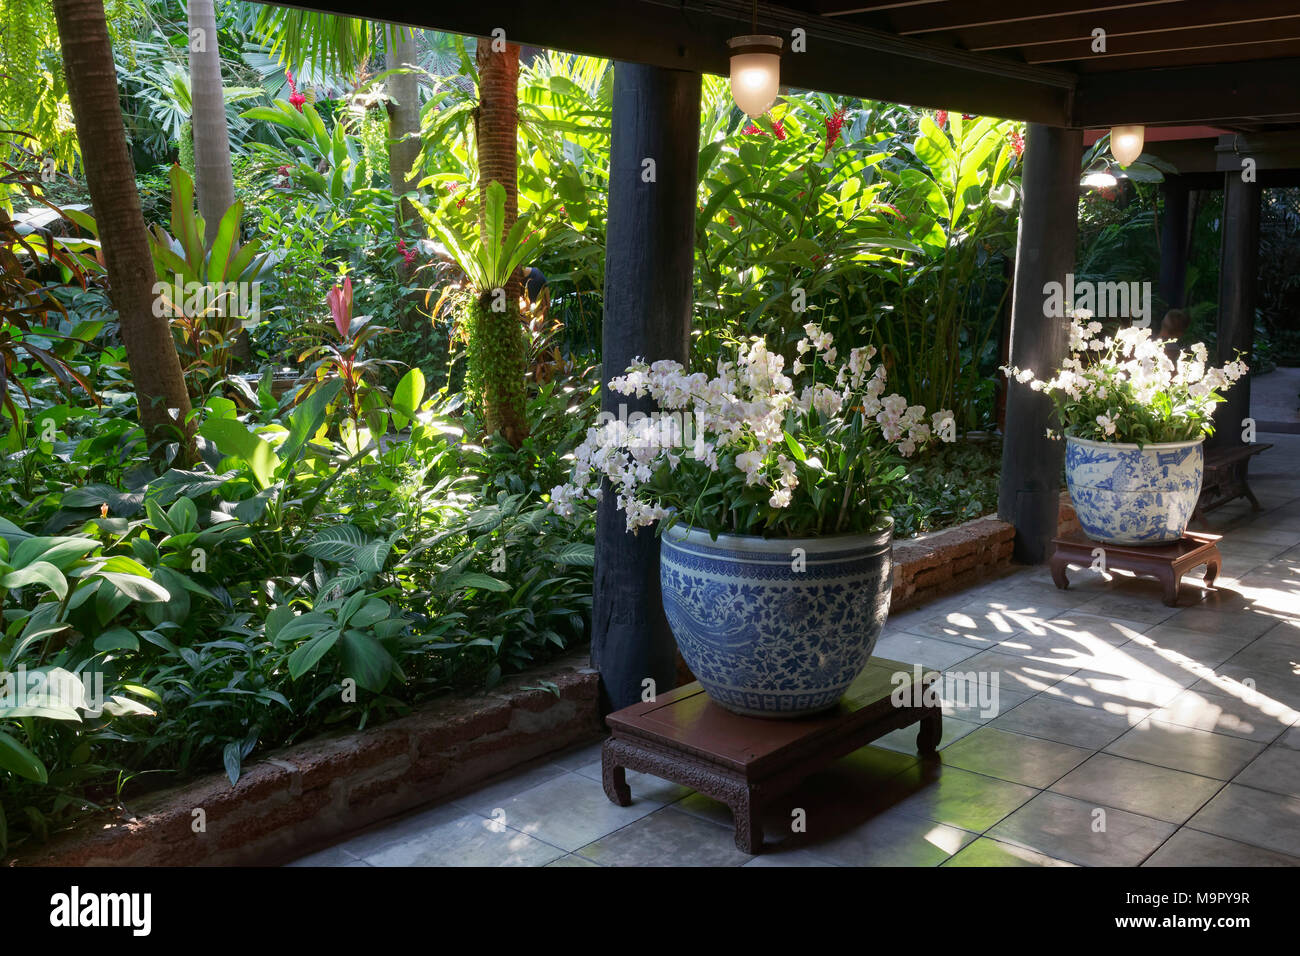 thai stilt house stockfotos thai stilt house bilder alamy. Black Bedroom Furniture Sets. Home Design Ideas